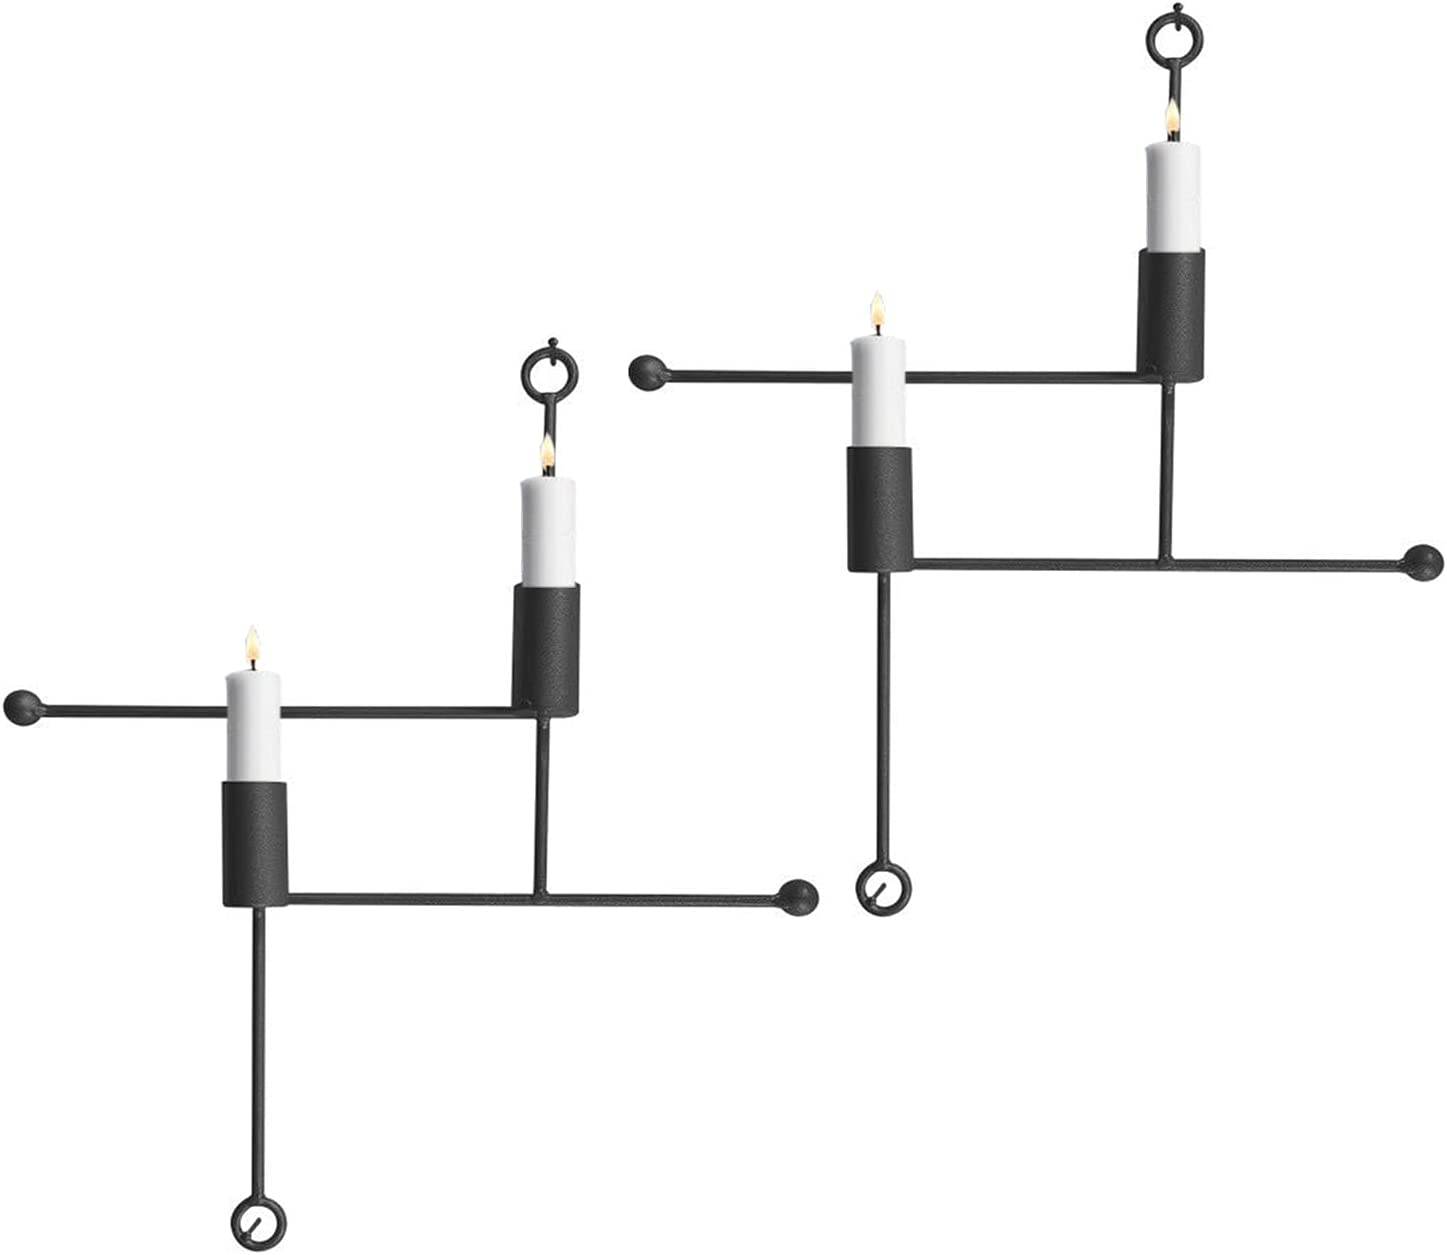 Set of 2 Wall Super-cheap Pillar Candle Simple Sconce supreme Metal Lines Hol